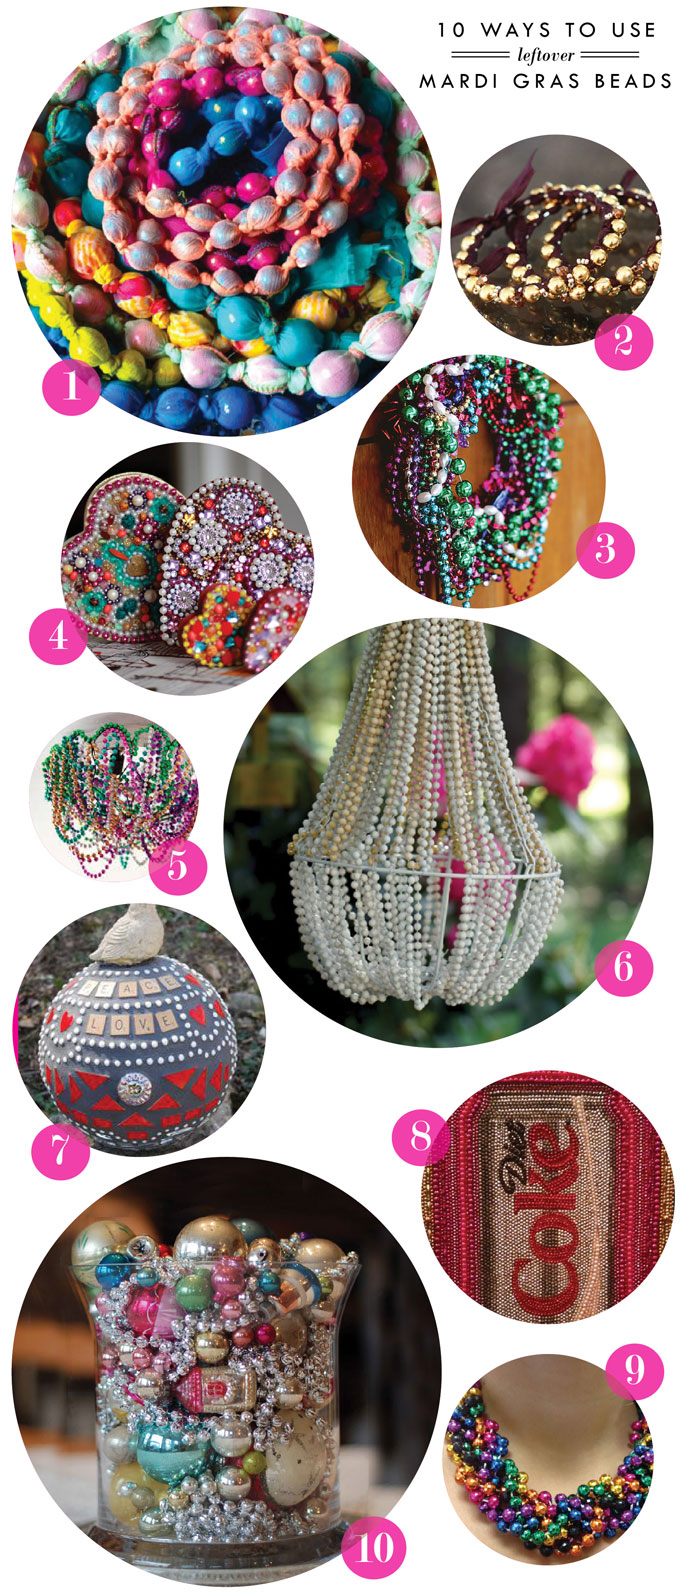 Craft time: 10 Ways to use leftover mardi gras beads